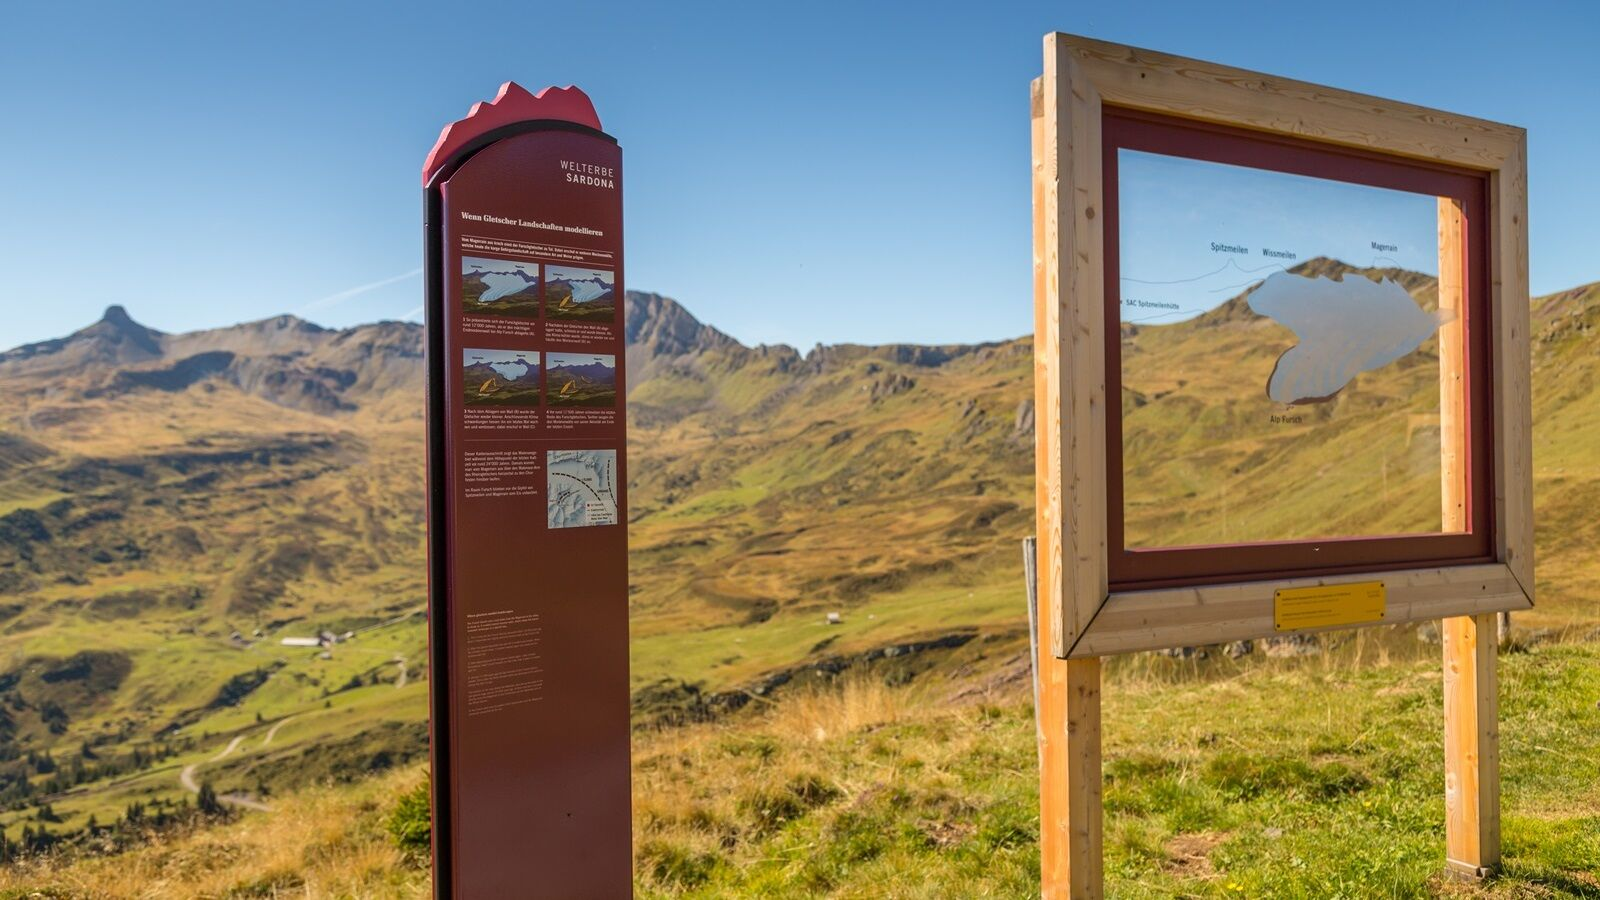 The UNESCO information panels convey exciting knowledge about the formation of the Alps